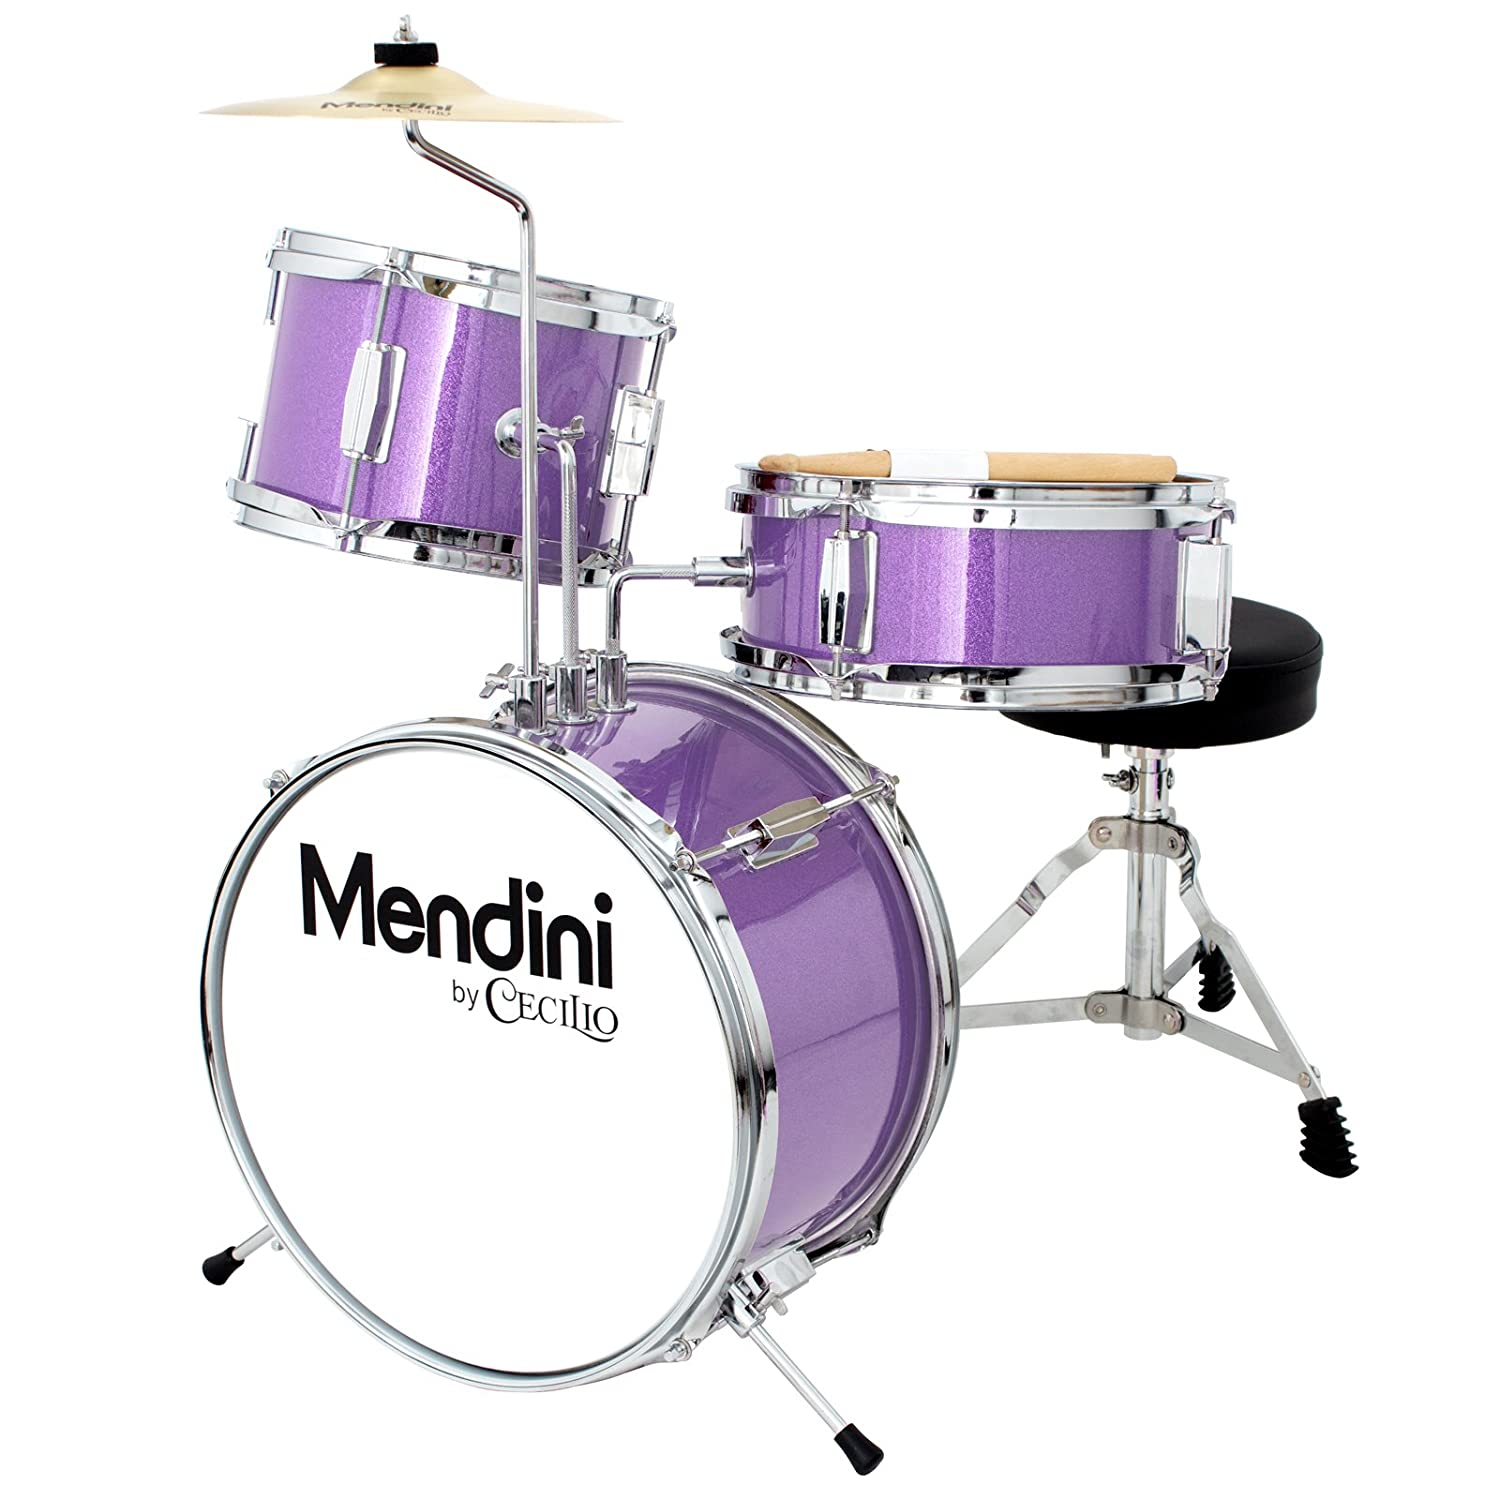 Mendini by Cecilio 13 Inch 3-Piece Kids/Junior Drum Set with Adjustable Throne, Cymbal, Pedal & Drumsticks, Metallic Purple, MJDS-1-PL Cecilio Musical Instruments